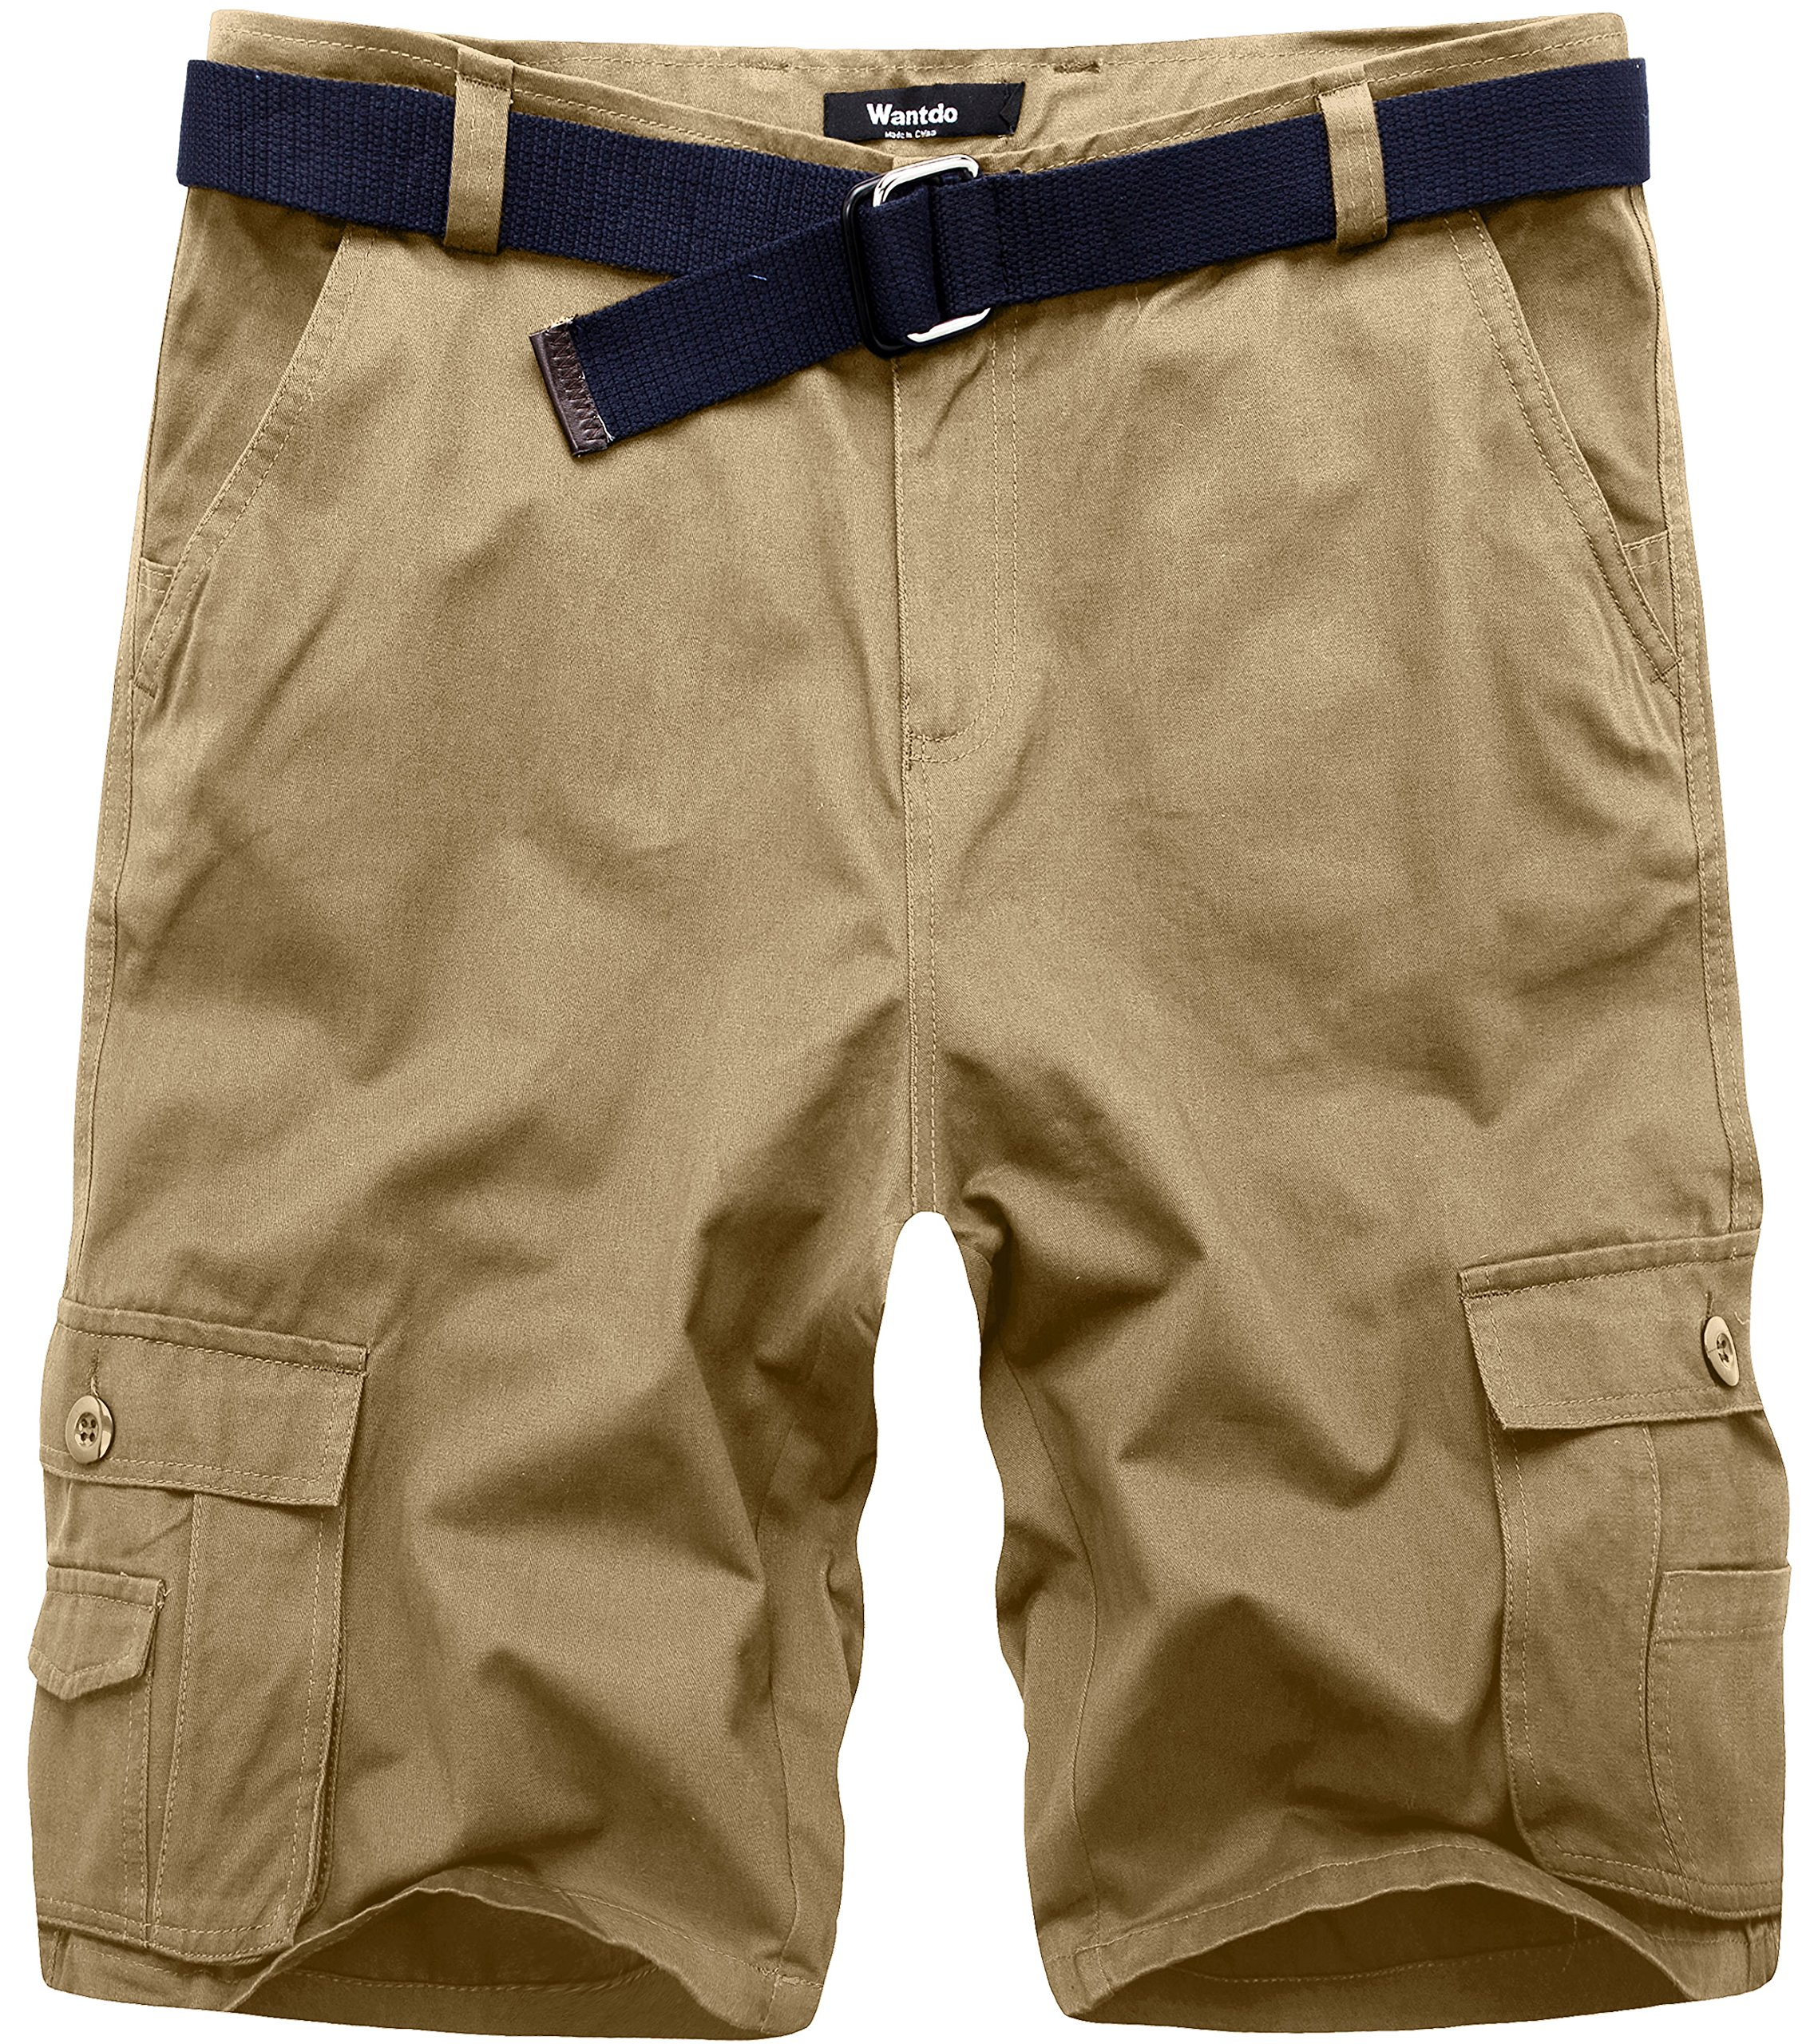 Wantdo Men's Belted Multi Pockets Loose Fit Relaxed Young Cargo Shorts 34 Khaki